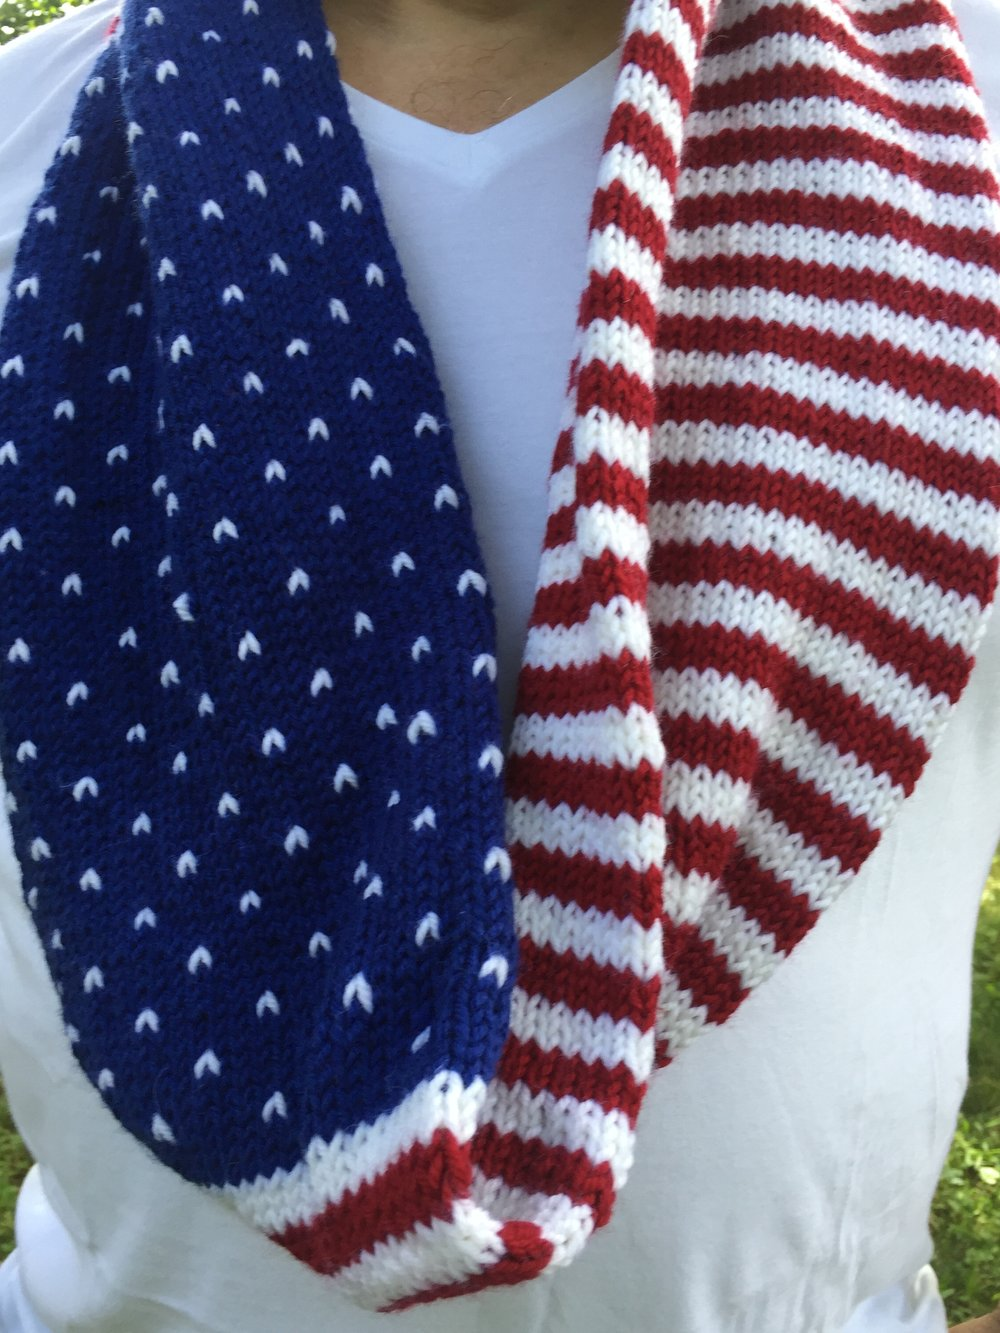 This worsted weight cowl is a perfect first color project. Fast and warm it is perfect for winter marches.  Protest is Patriotic Cowl Pattern  is free but please consider making a donation to  Planned Parenthood.